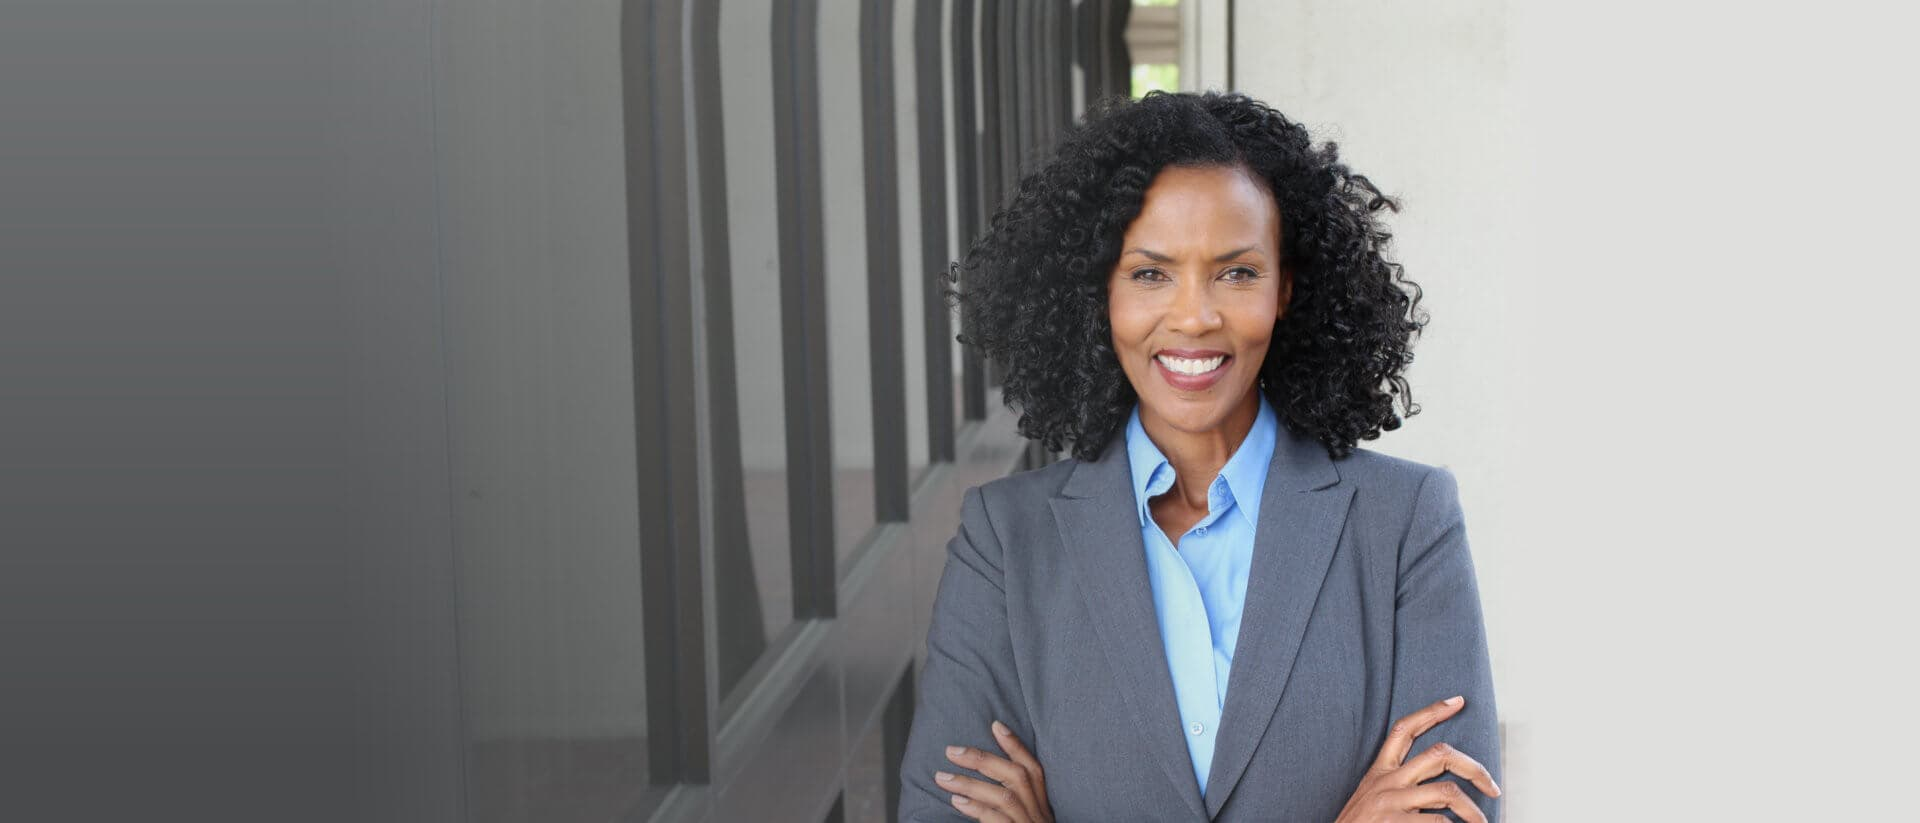 a business woman smiling